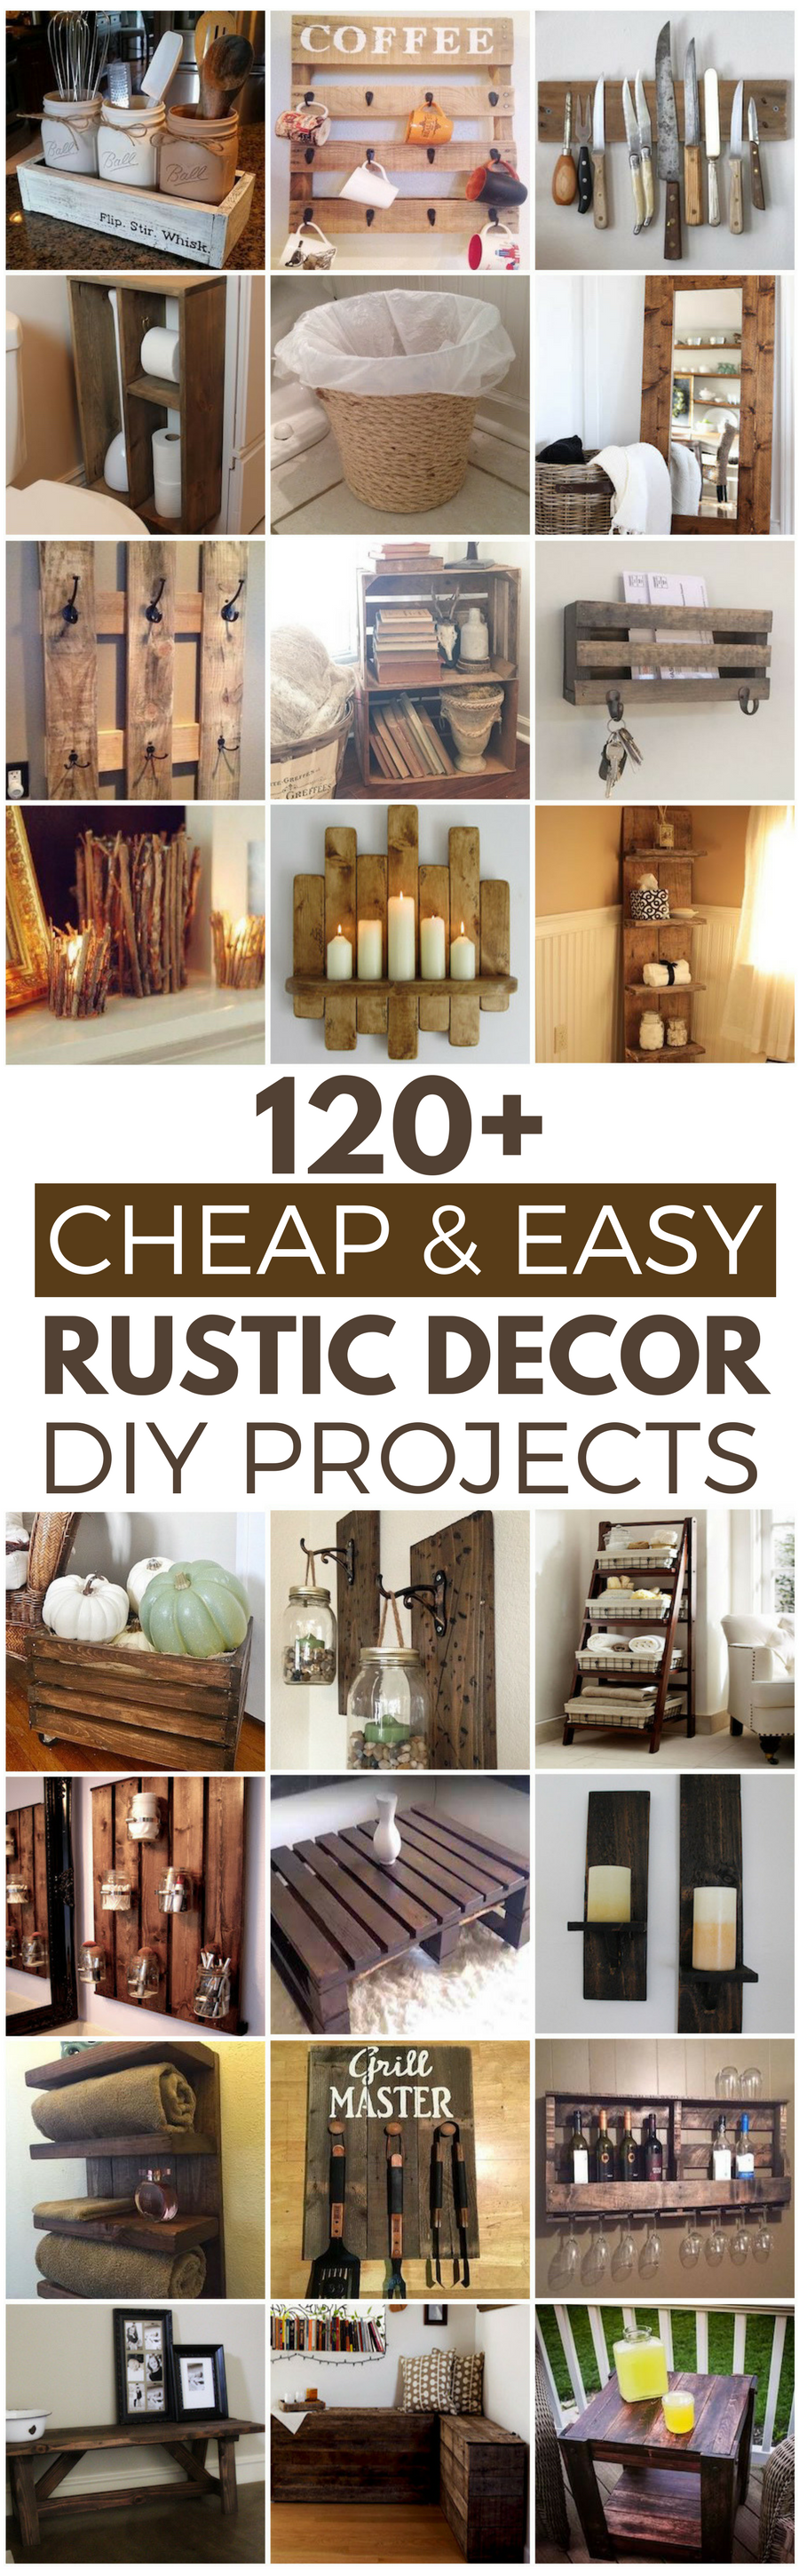 120 cheap and easy diy rustic home decor ideas prudent penny pincher - Ideas home decor ...